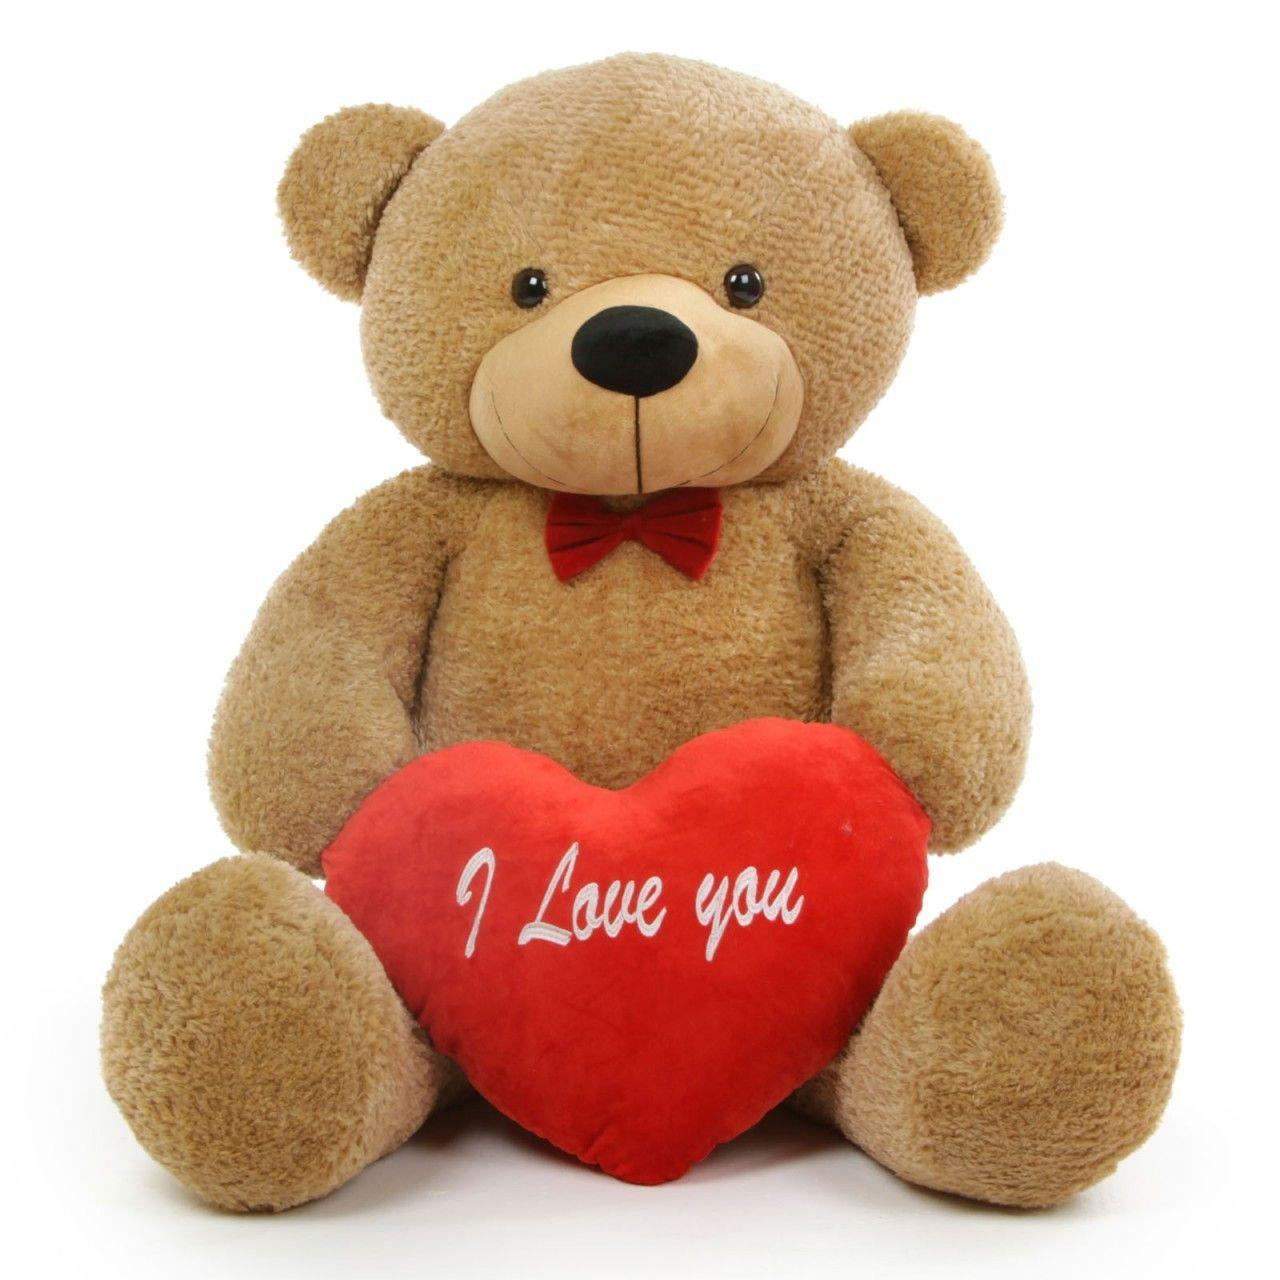 I Love You Teddy Bear Hd Wallpapers Wallpaper Cave